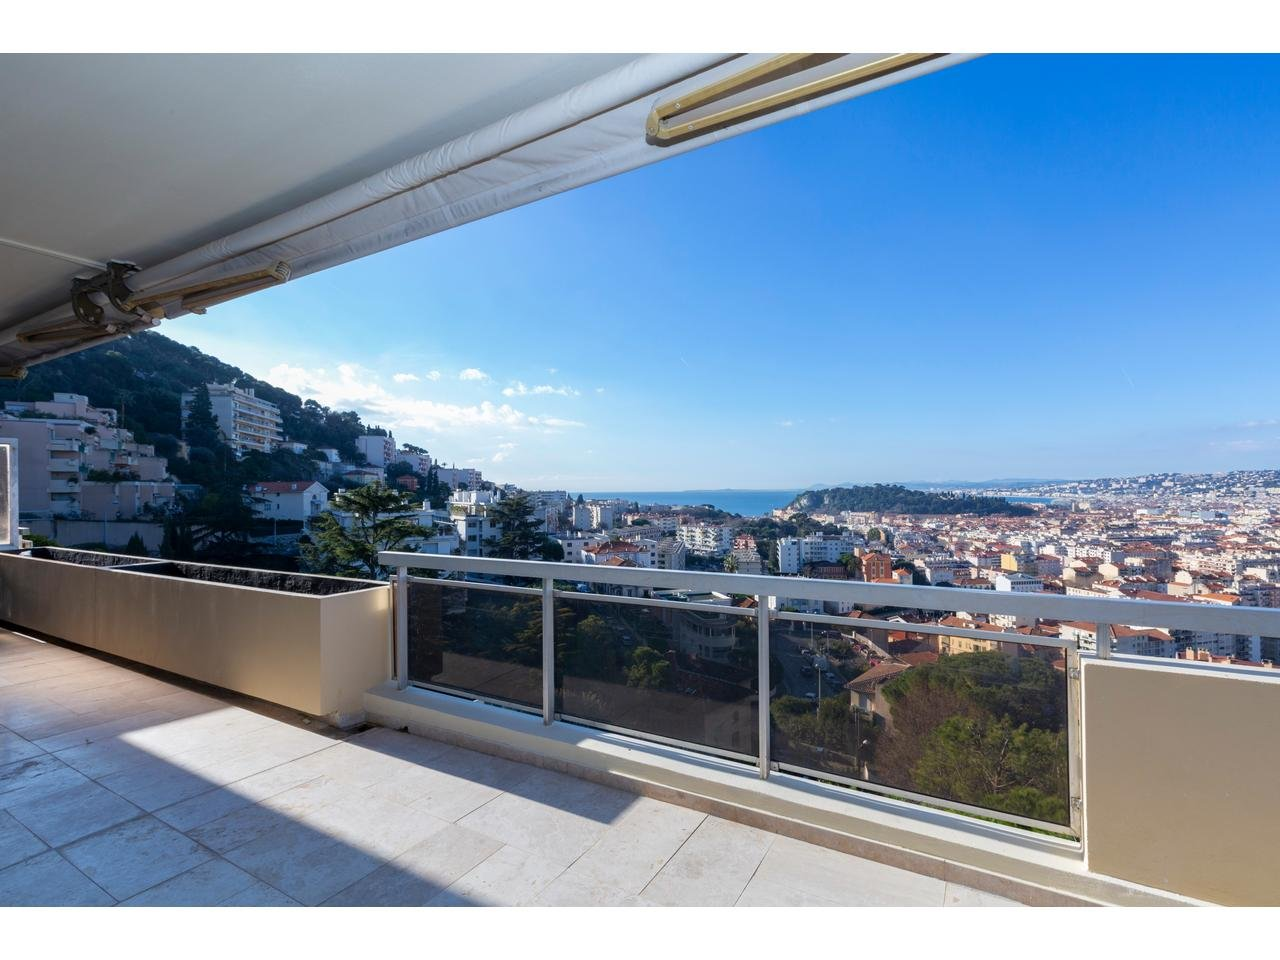 Appartement  4 Rooms 103m2  for sale  1190000 €